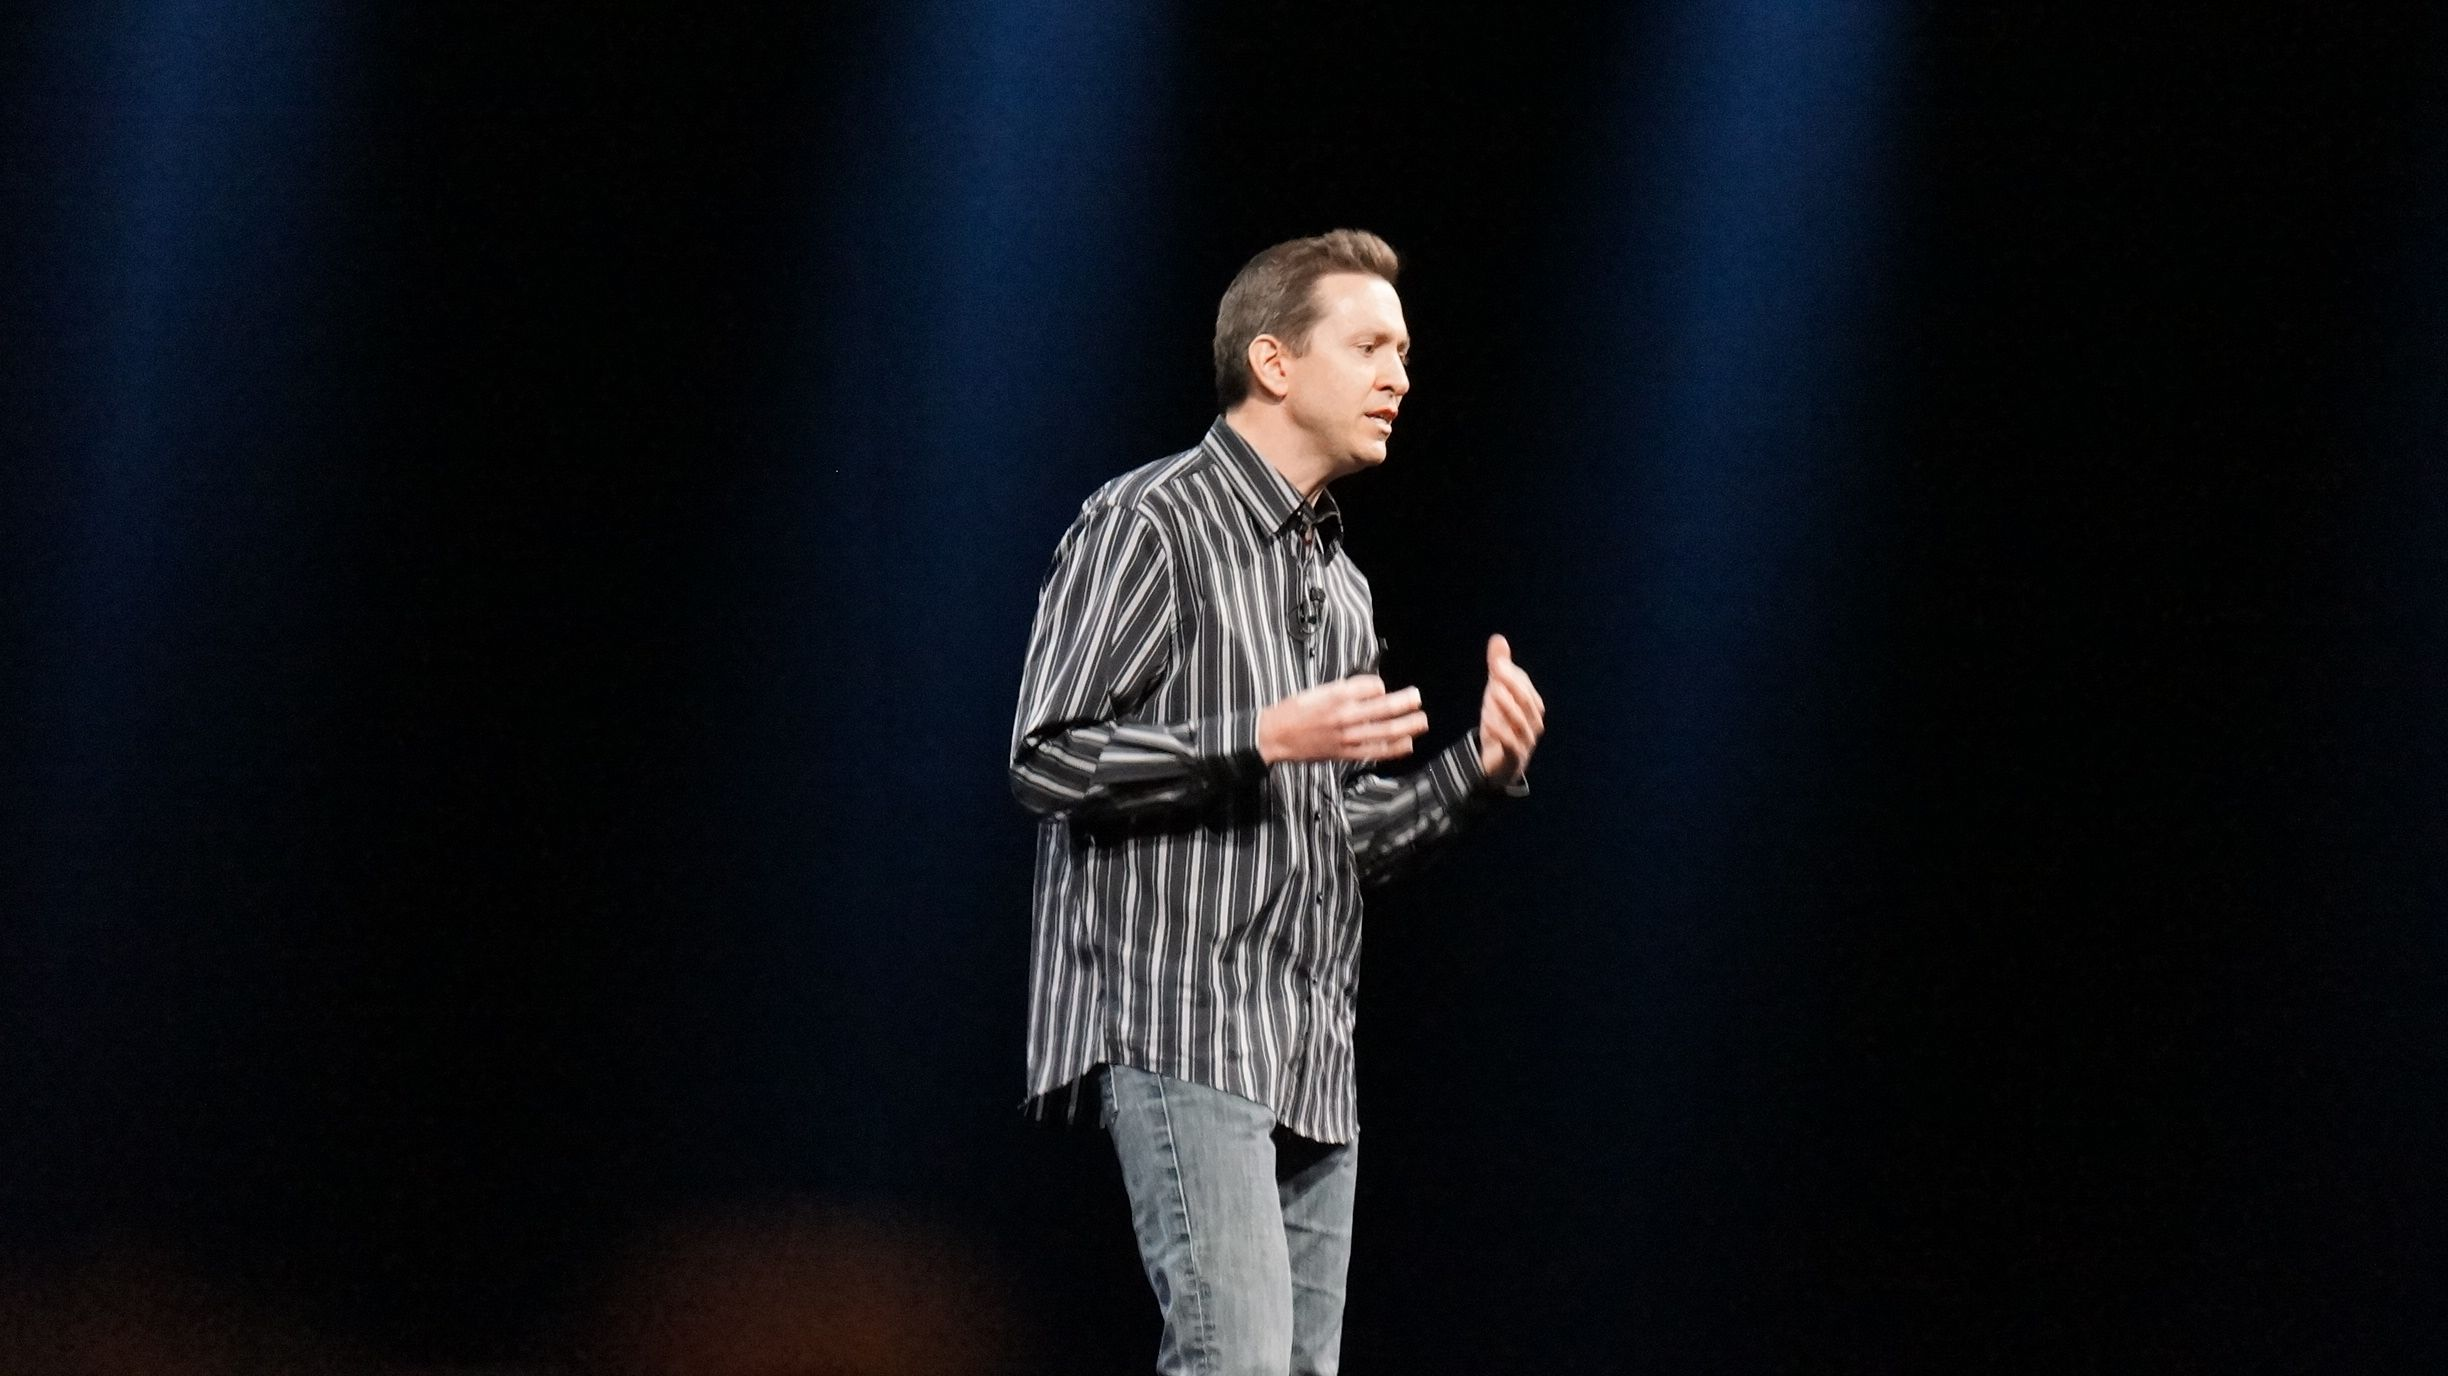 Apple WWDC 2012 Scott Forstall